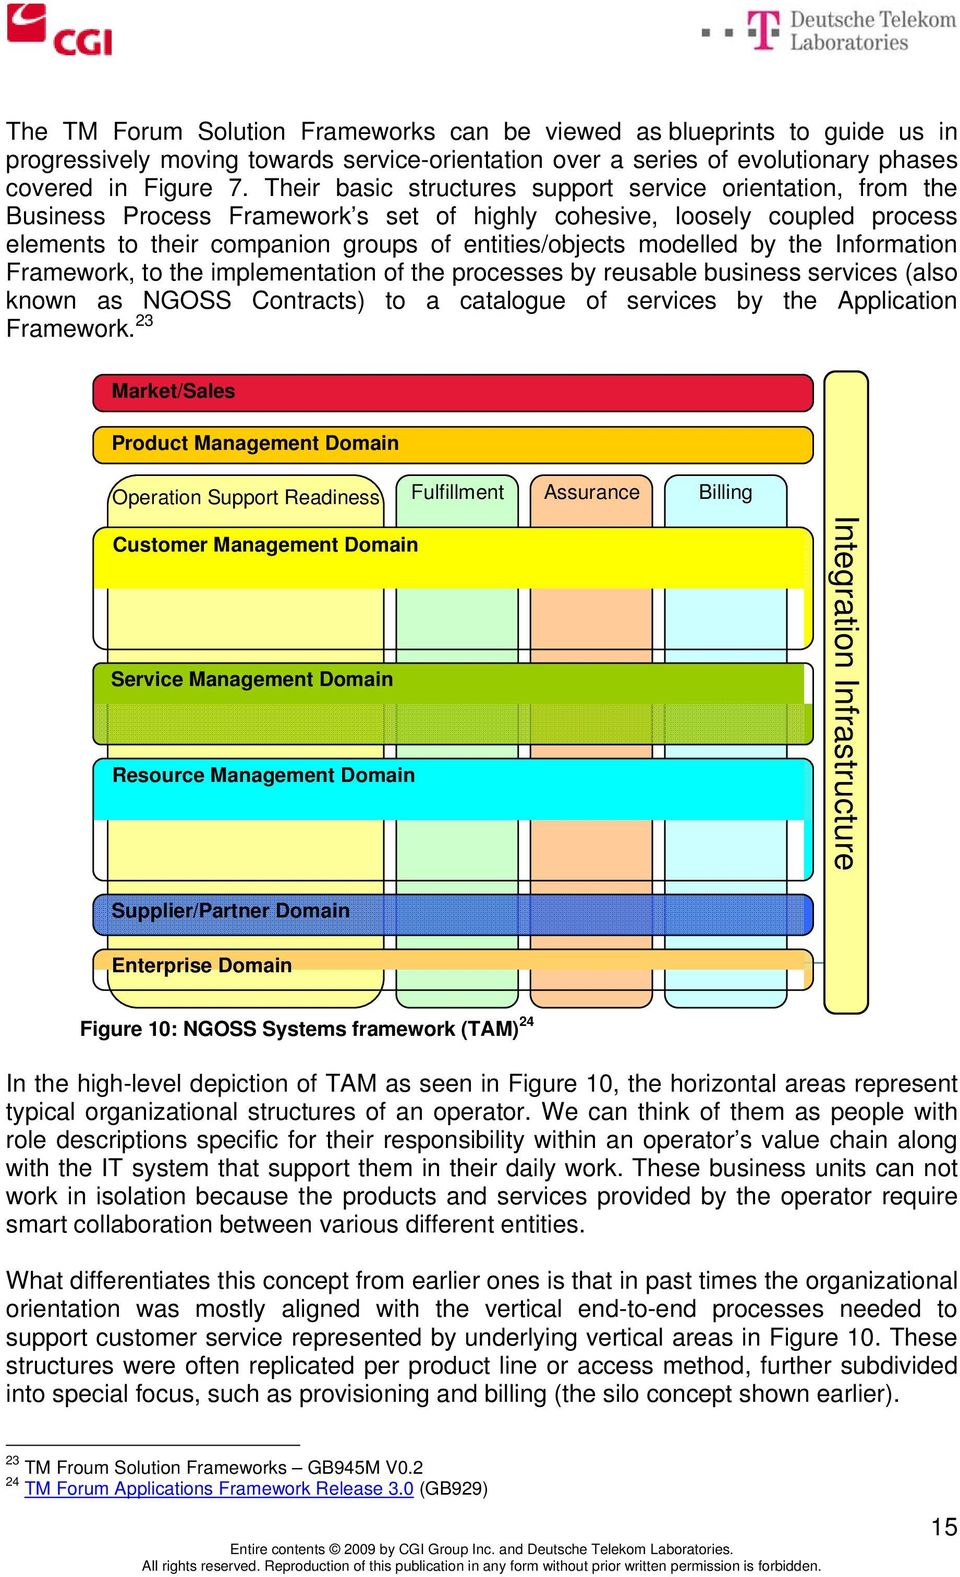 modelled by the Information Framework, to the implementation of the processes by reusable business services (also known as NGOSS Contracts) to a catalogue of services by the Application Framework.